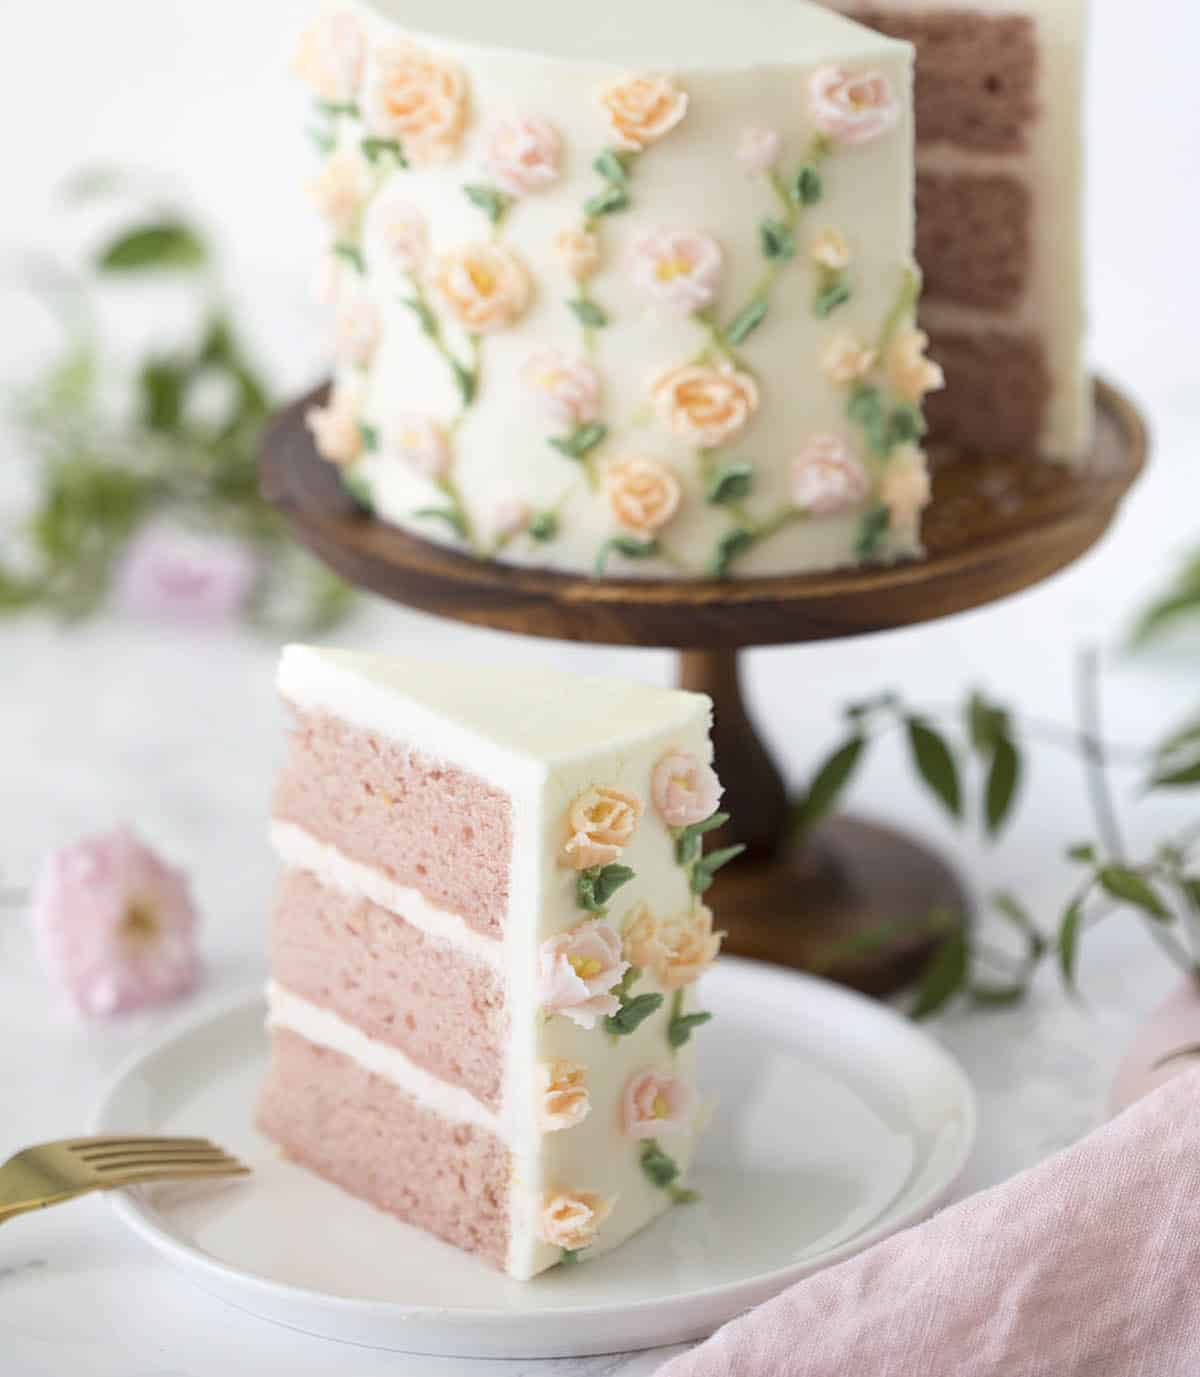 A pink cake with snall roses painted on using buttercream frosting.